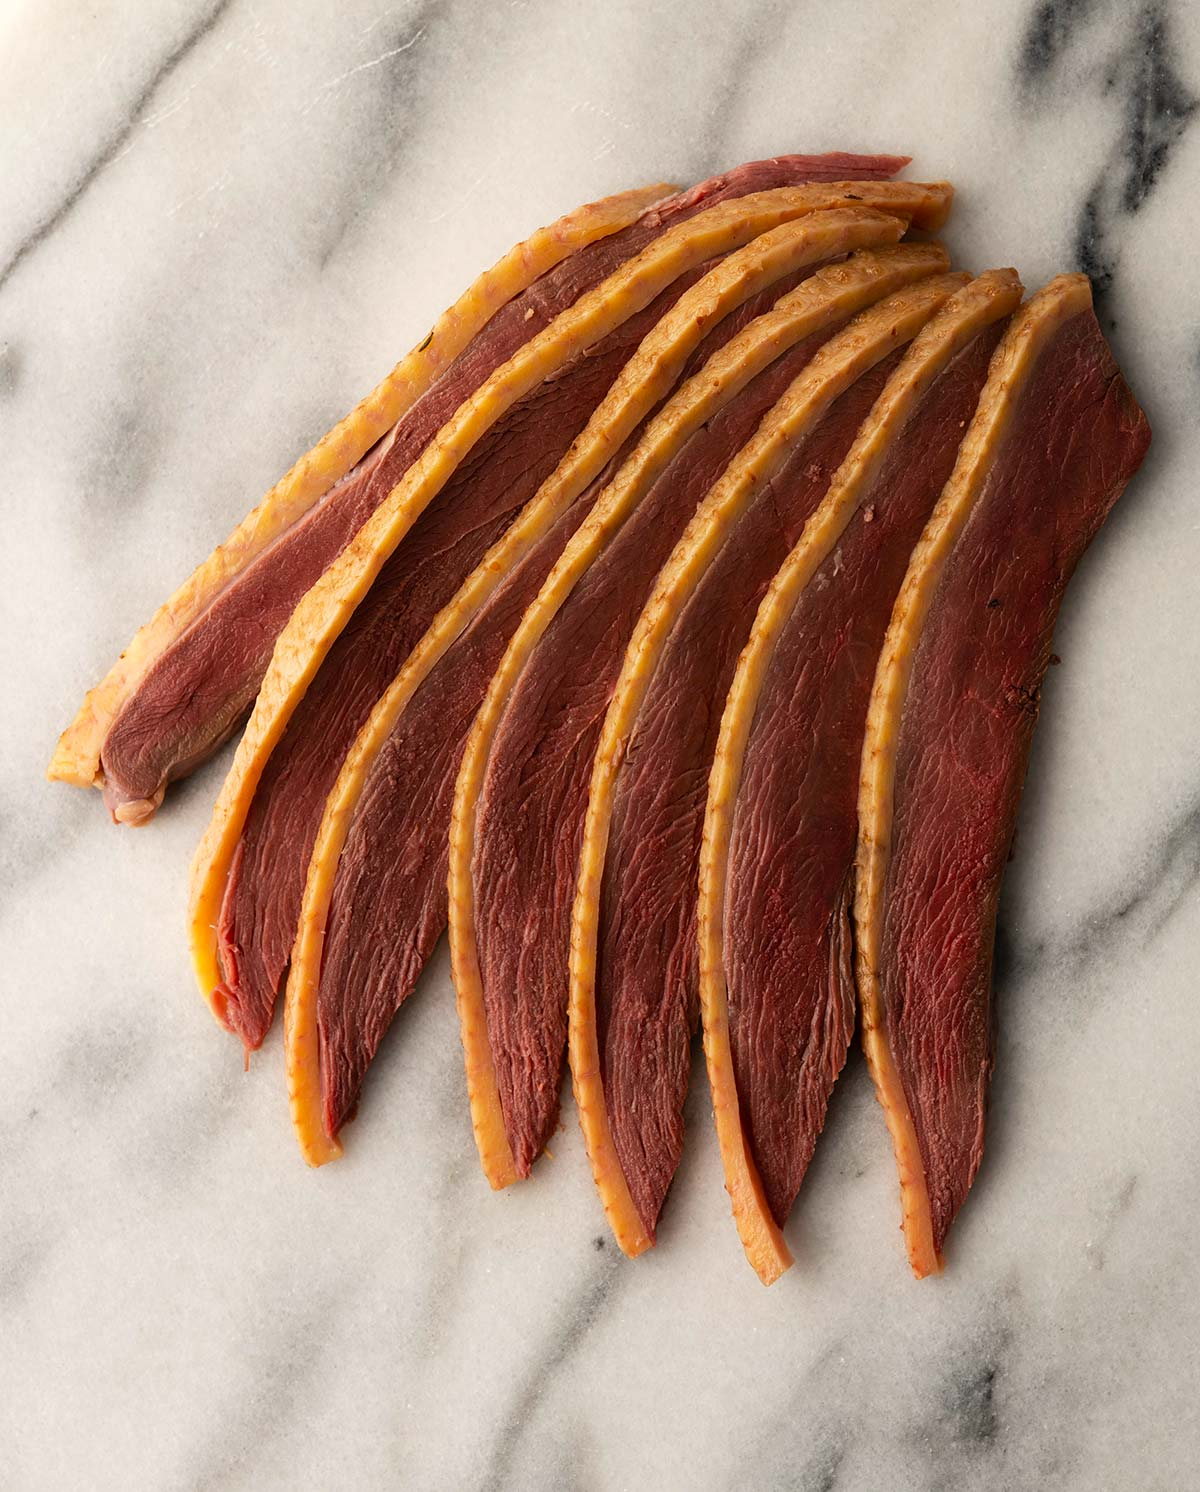 Slices of duck bacon ready to eat